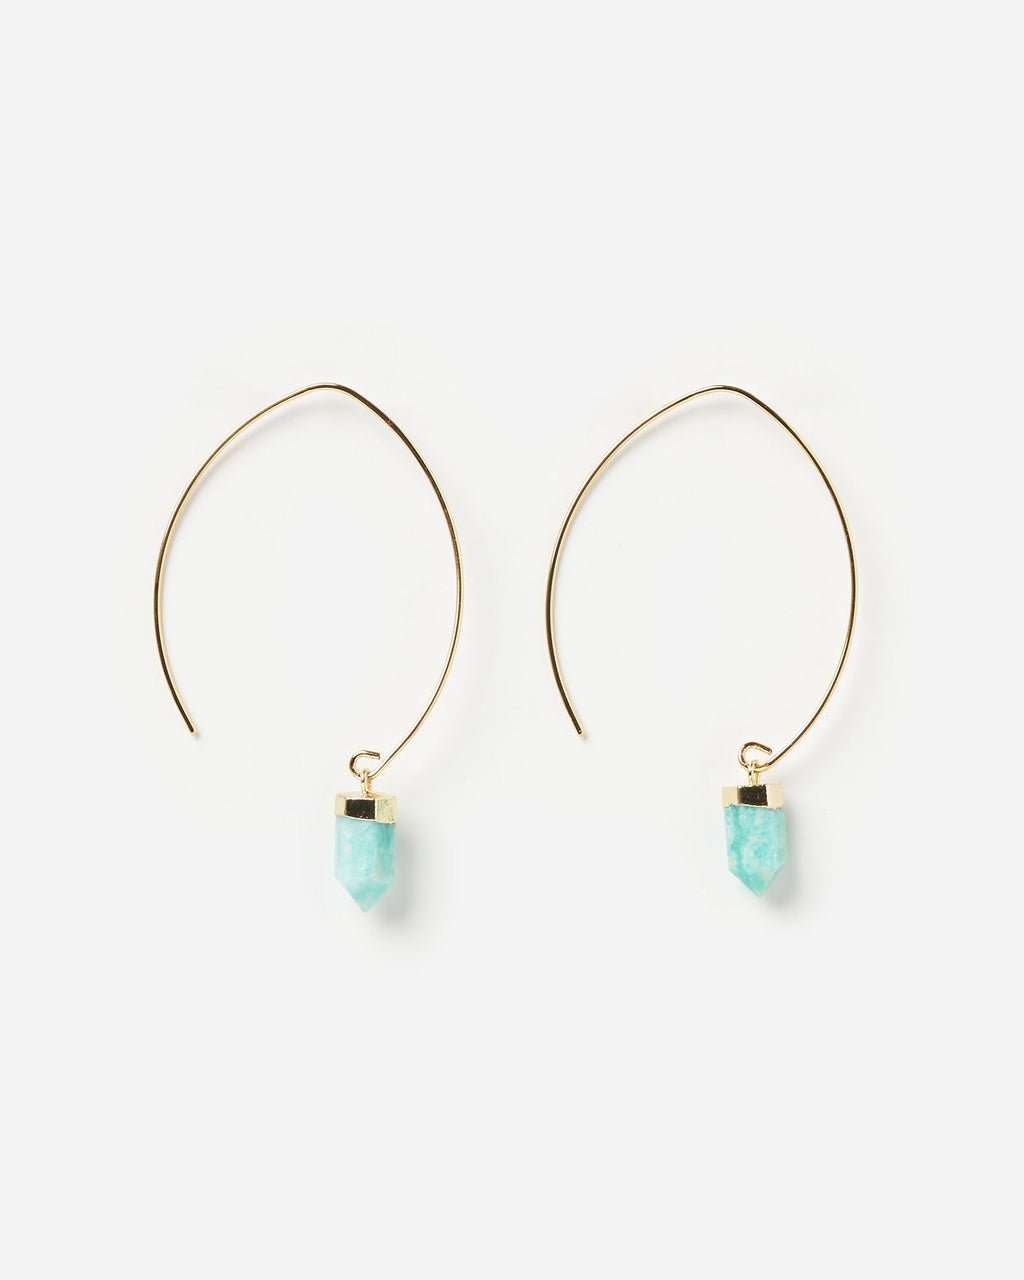 Miz Casa & Co Wanderer Earrings Gold Turquoise